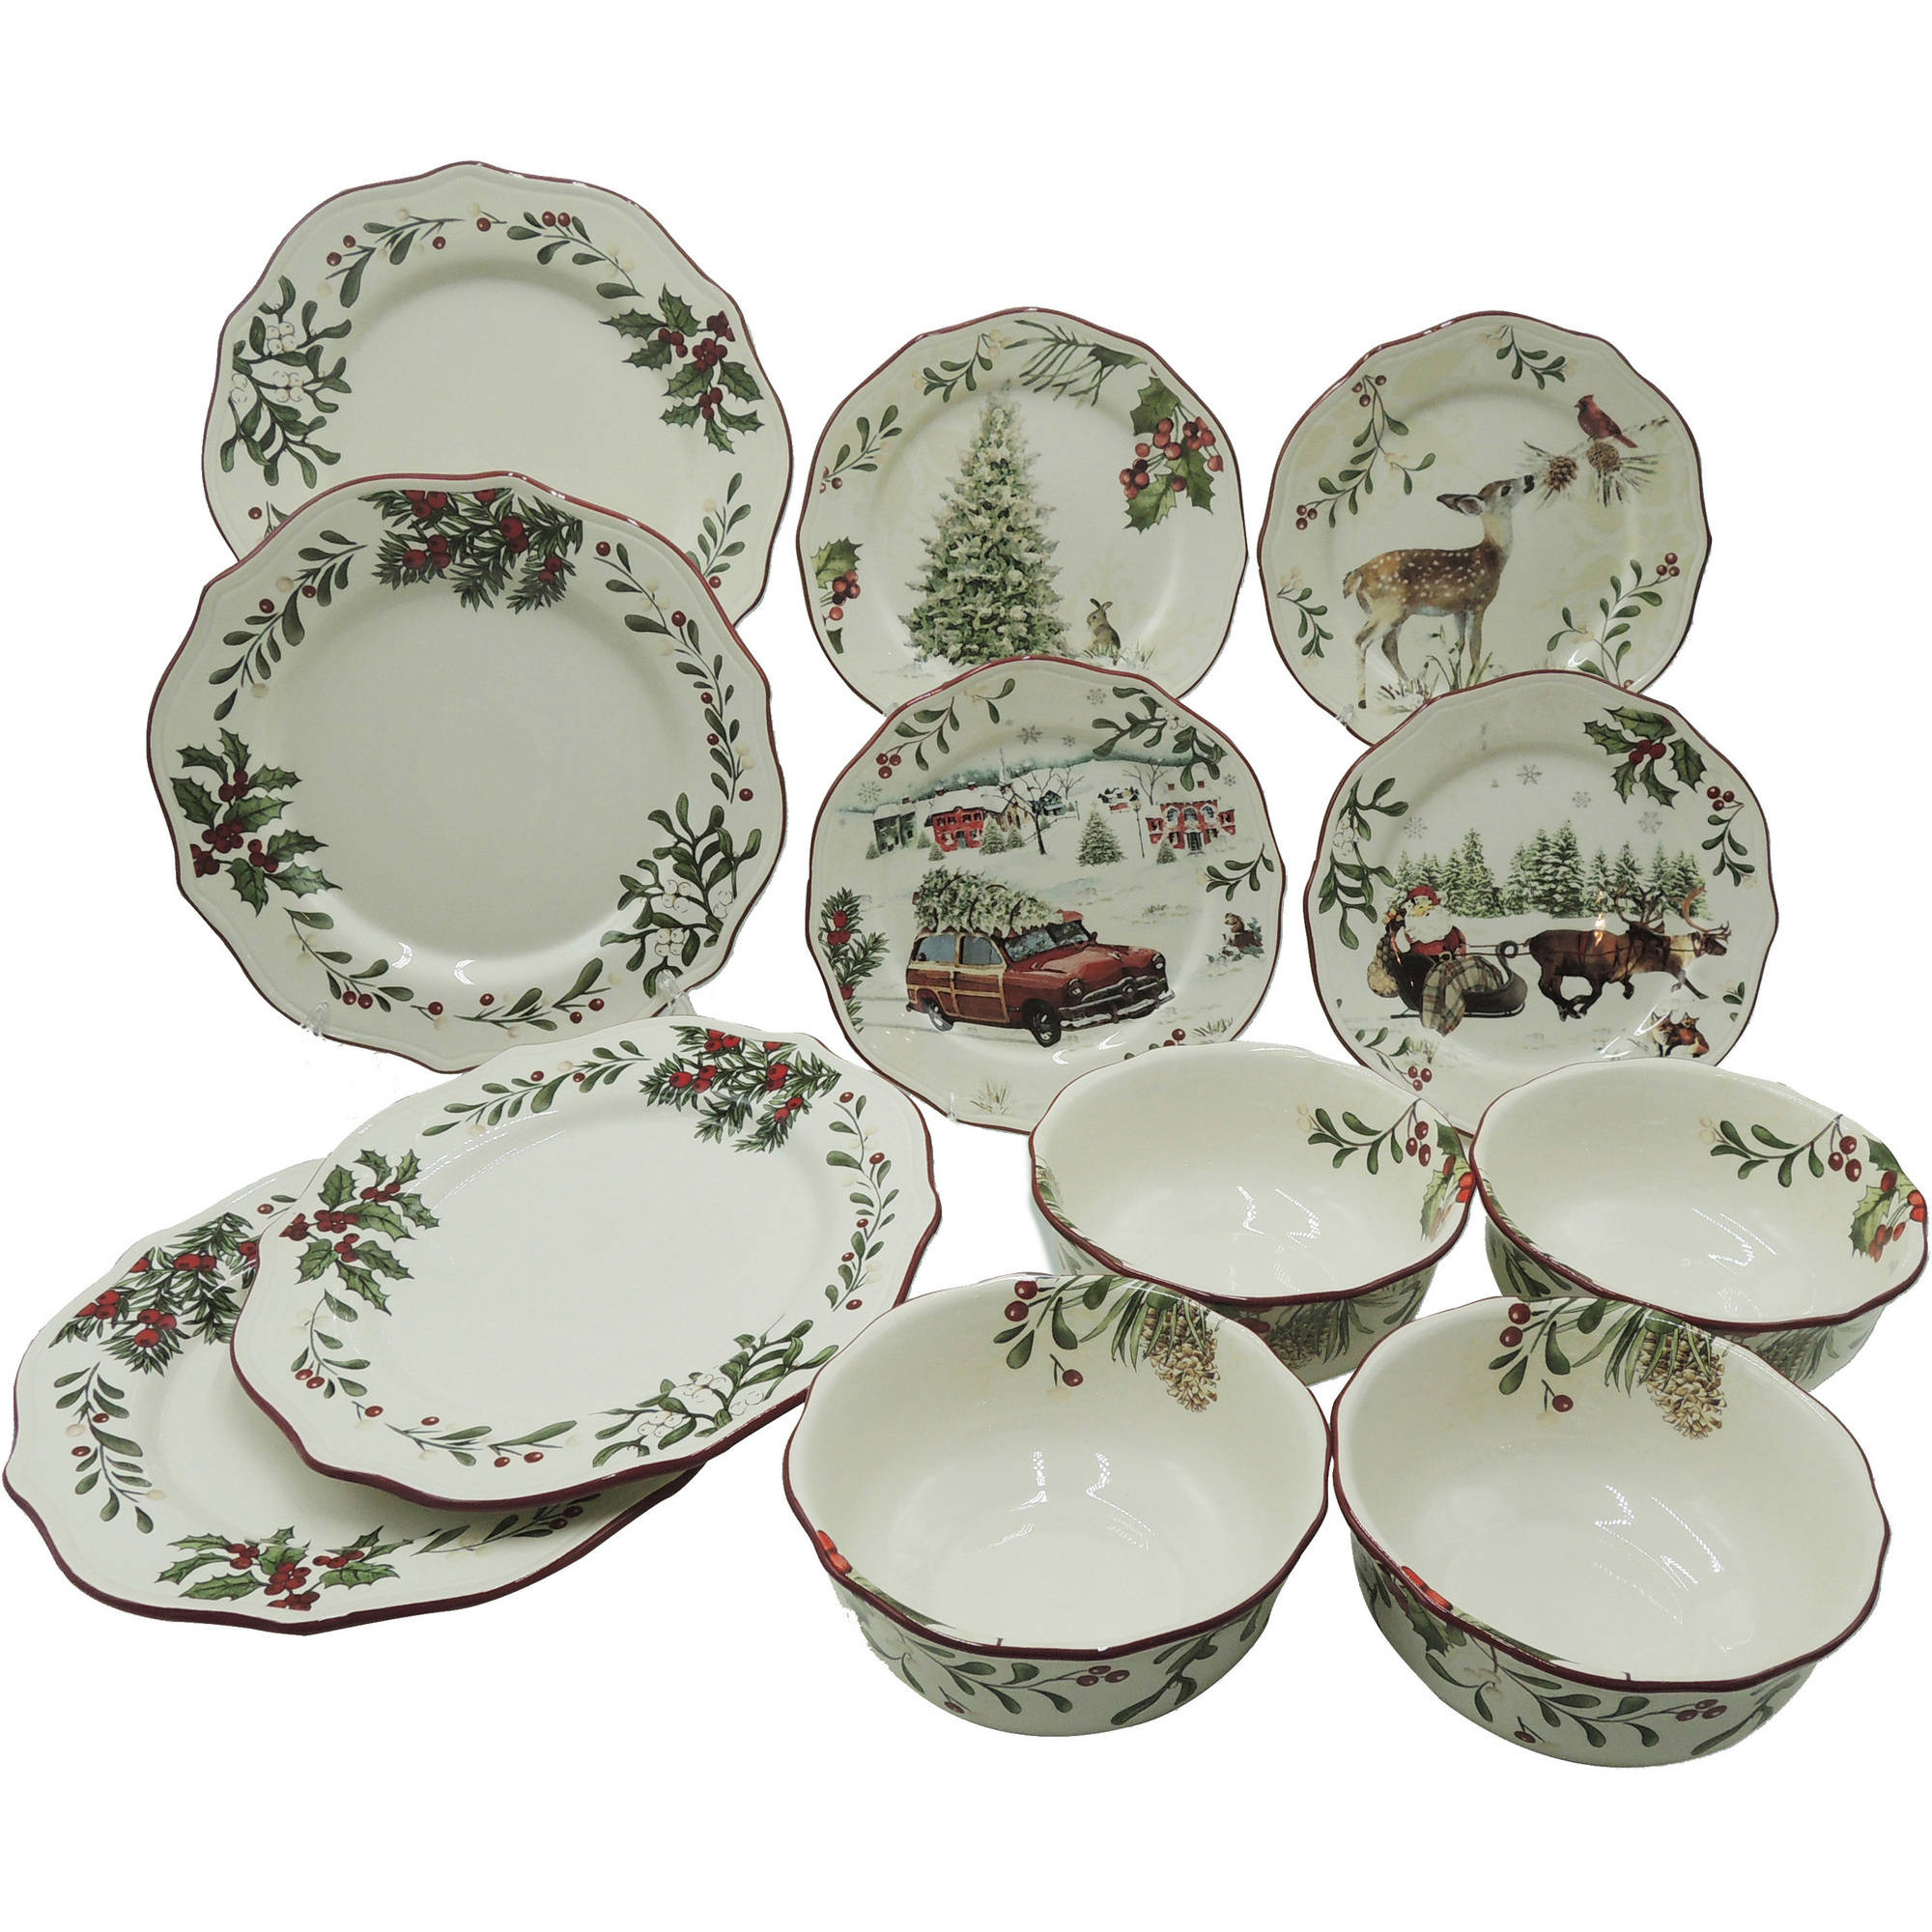 Ordinaire Better Homes And Gardens Heritage 12 Piece Dinnerware Set   Walmart.com